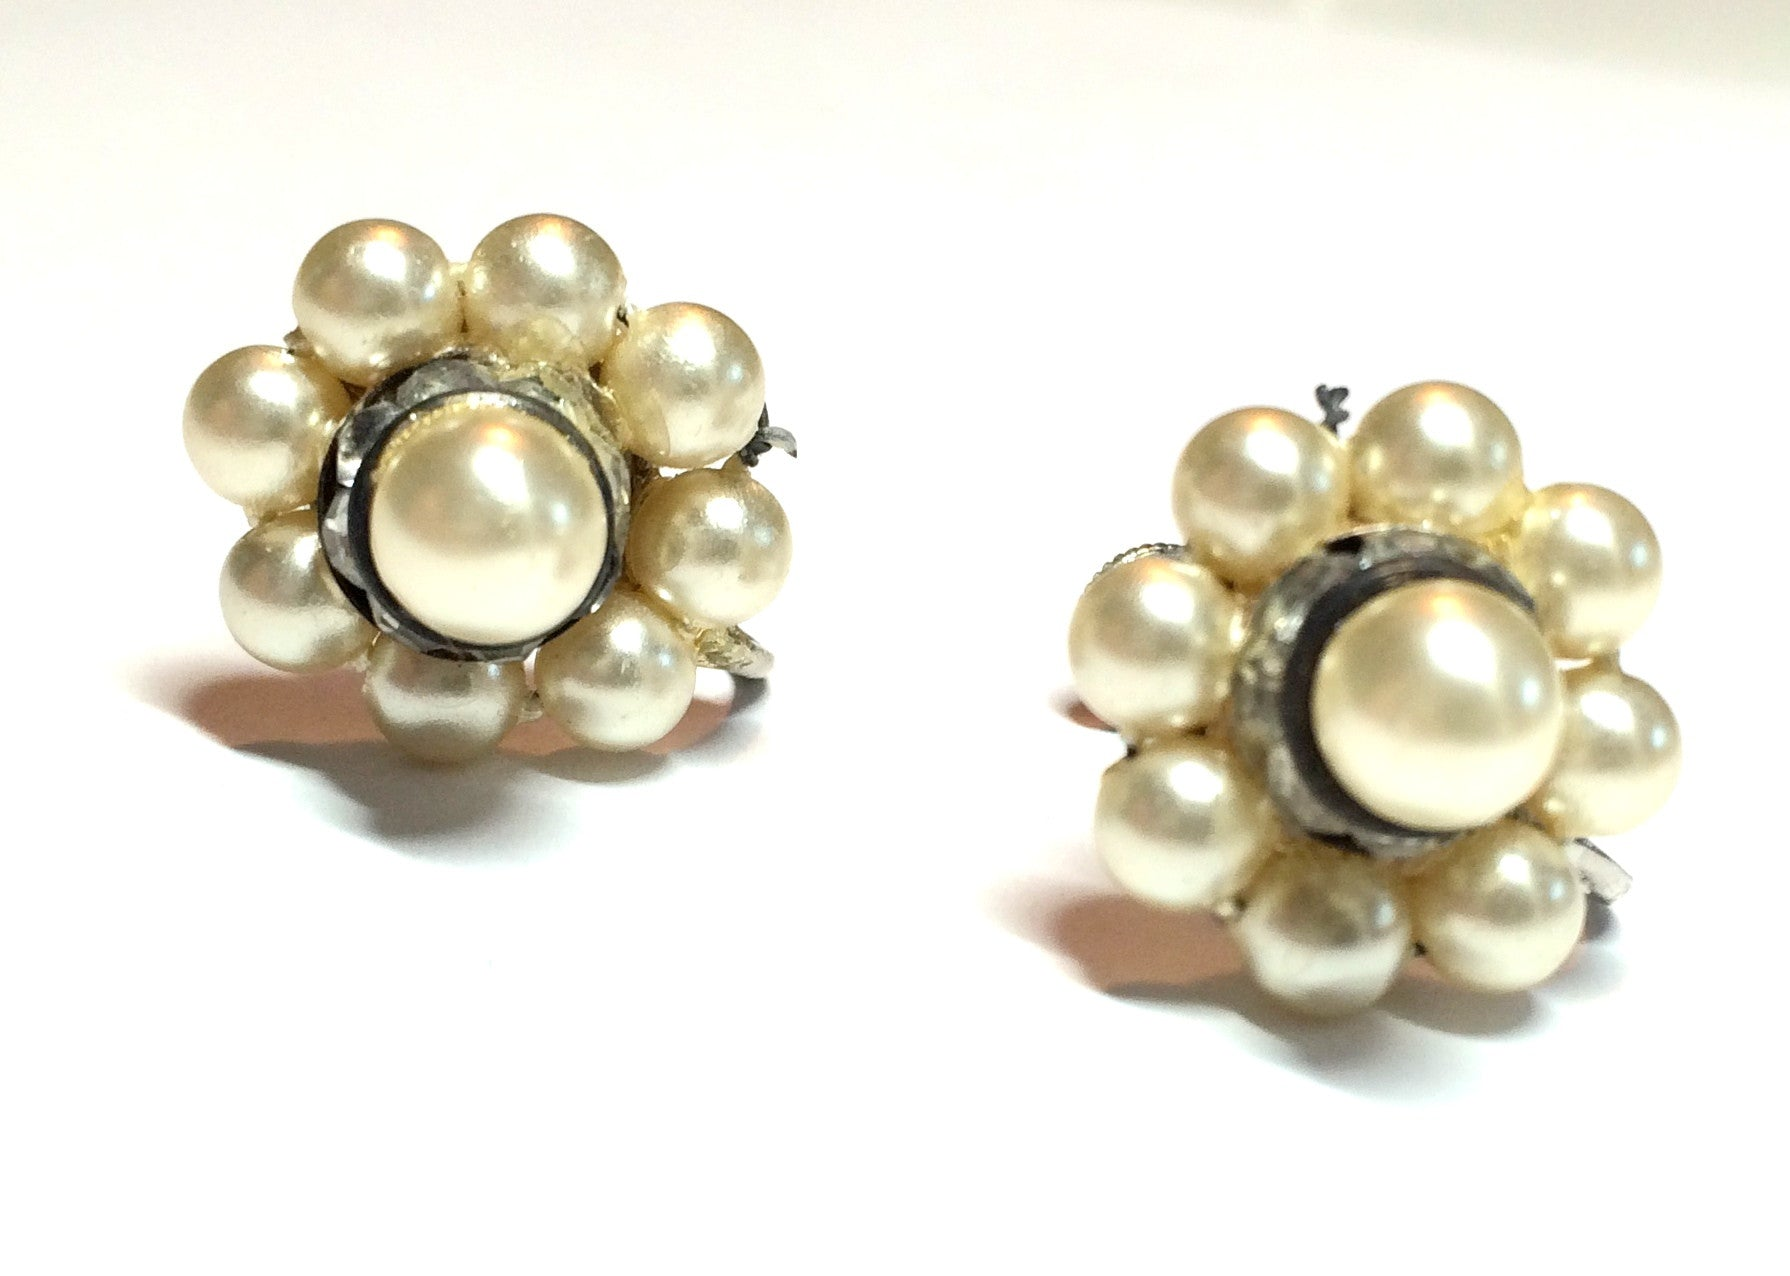 Faux Pearl Flower Shaped Clip Earrings w/ Rhinestones circa 1940